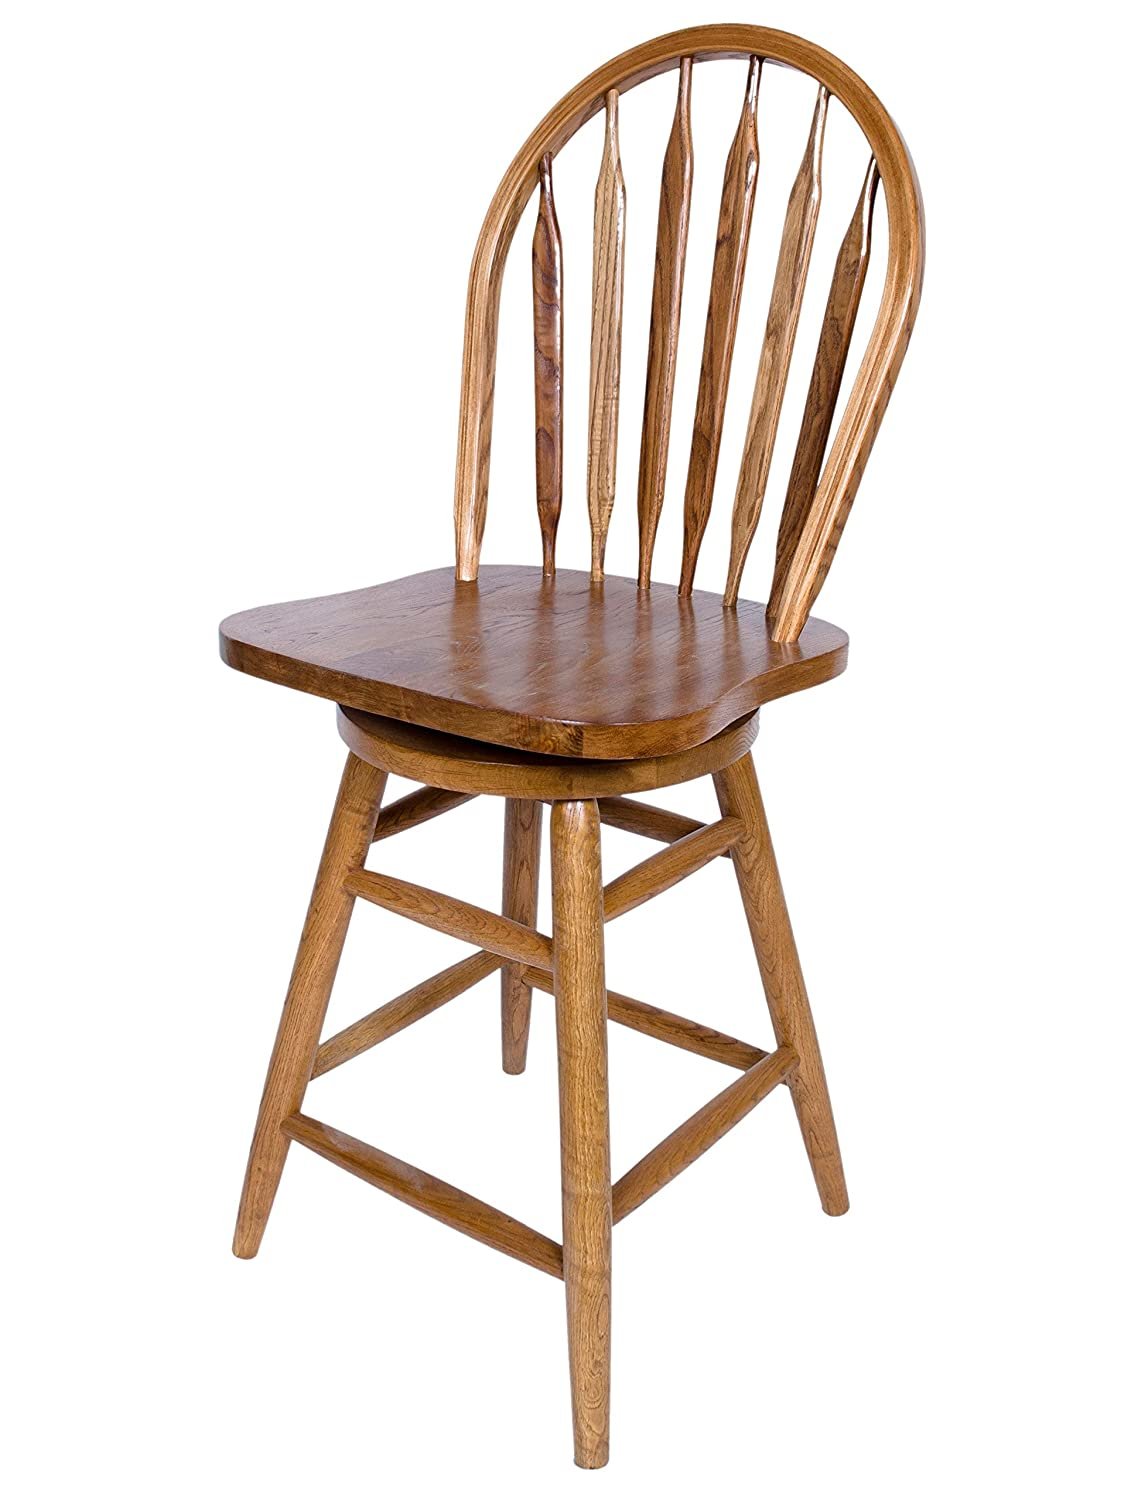 swivel bar stools. Amazon.com: Solid Oak Windsor Back Swivel Bar Stool 24 Inches High: Kitchen \u0026 Dining Stools